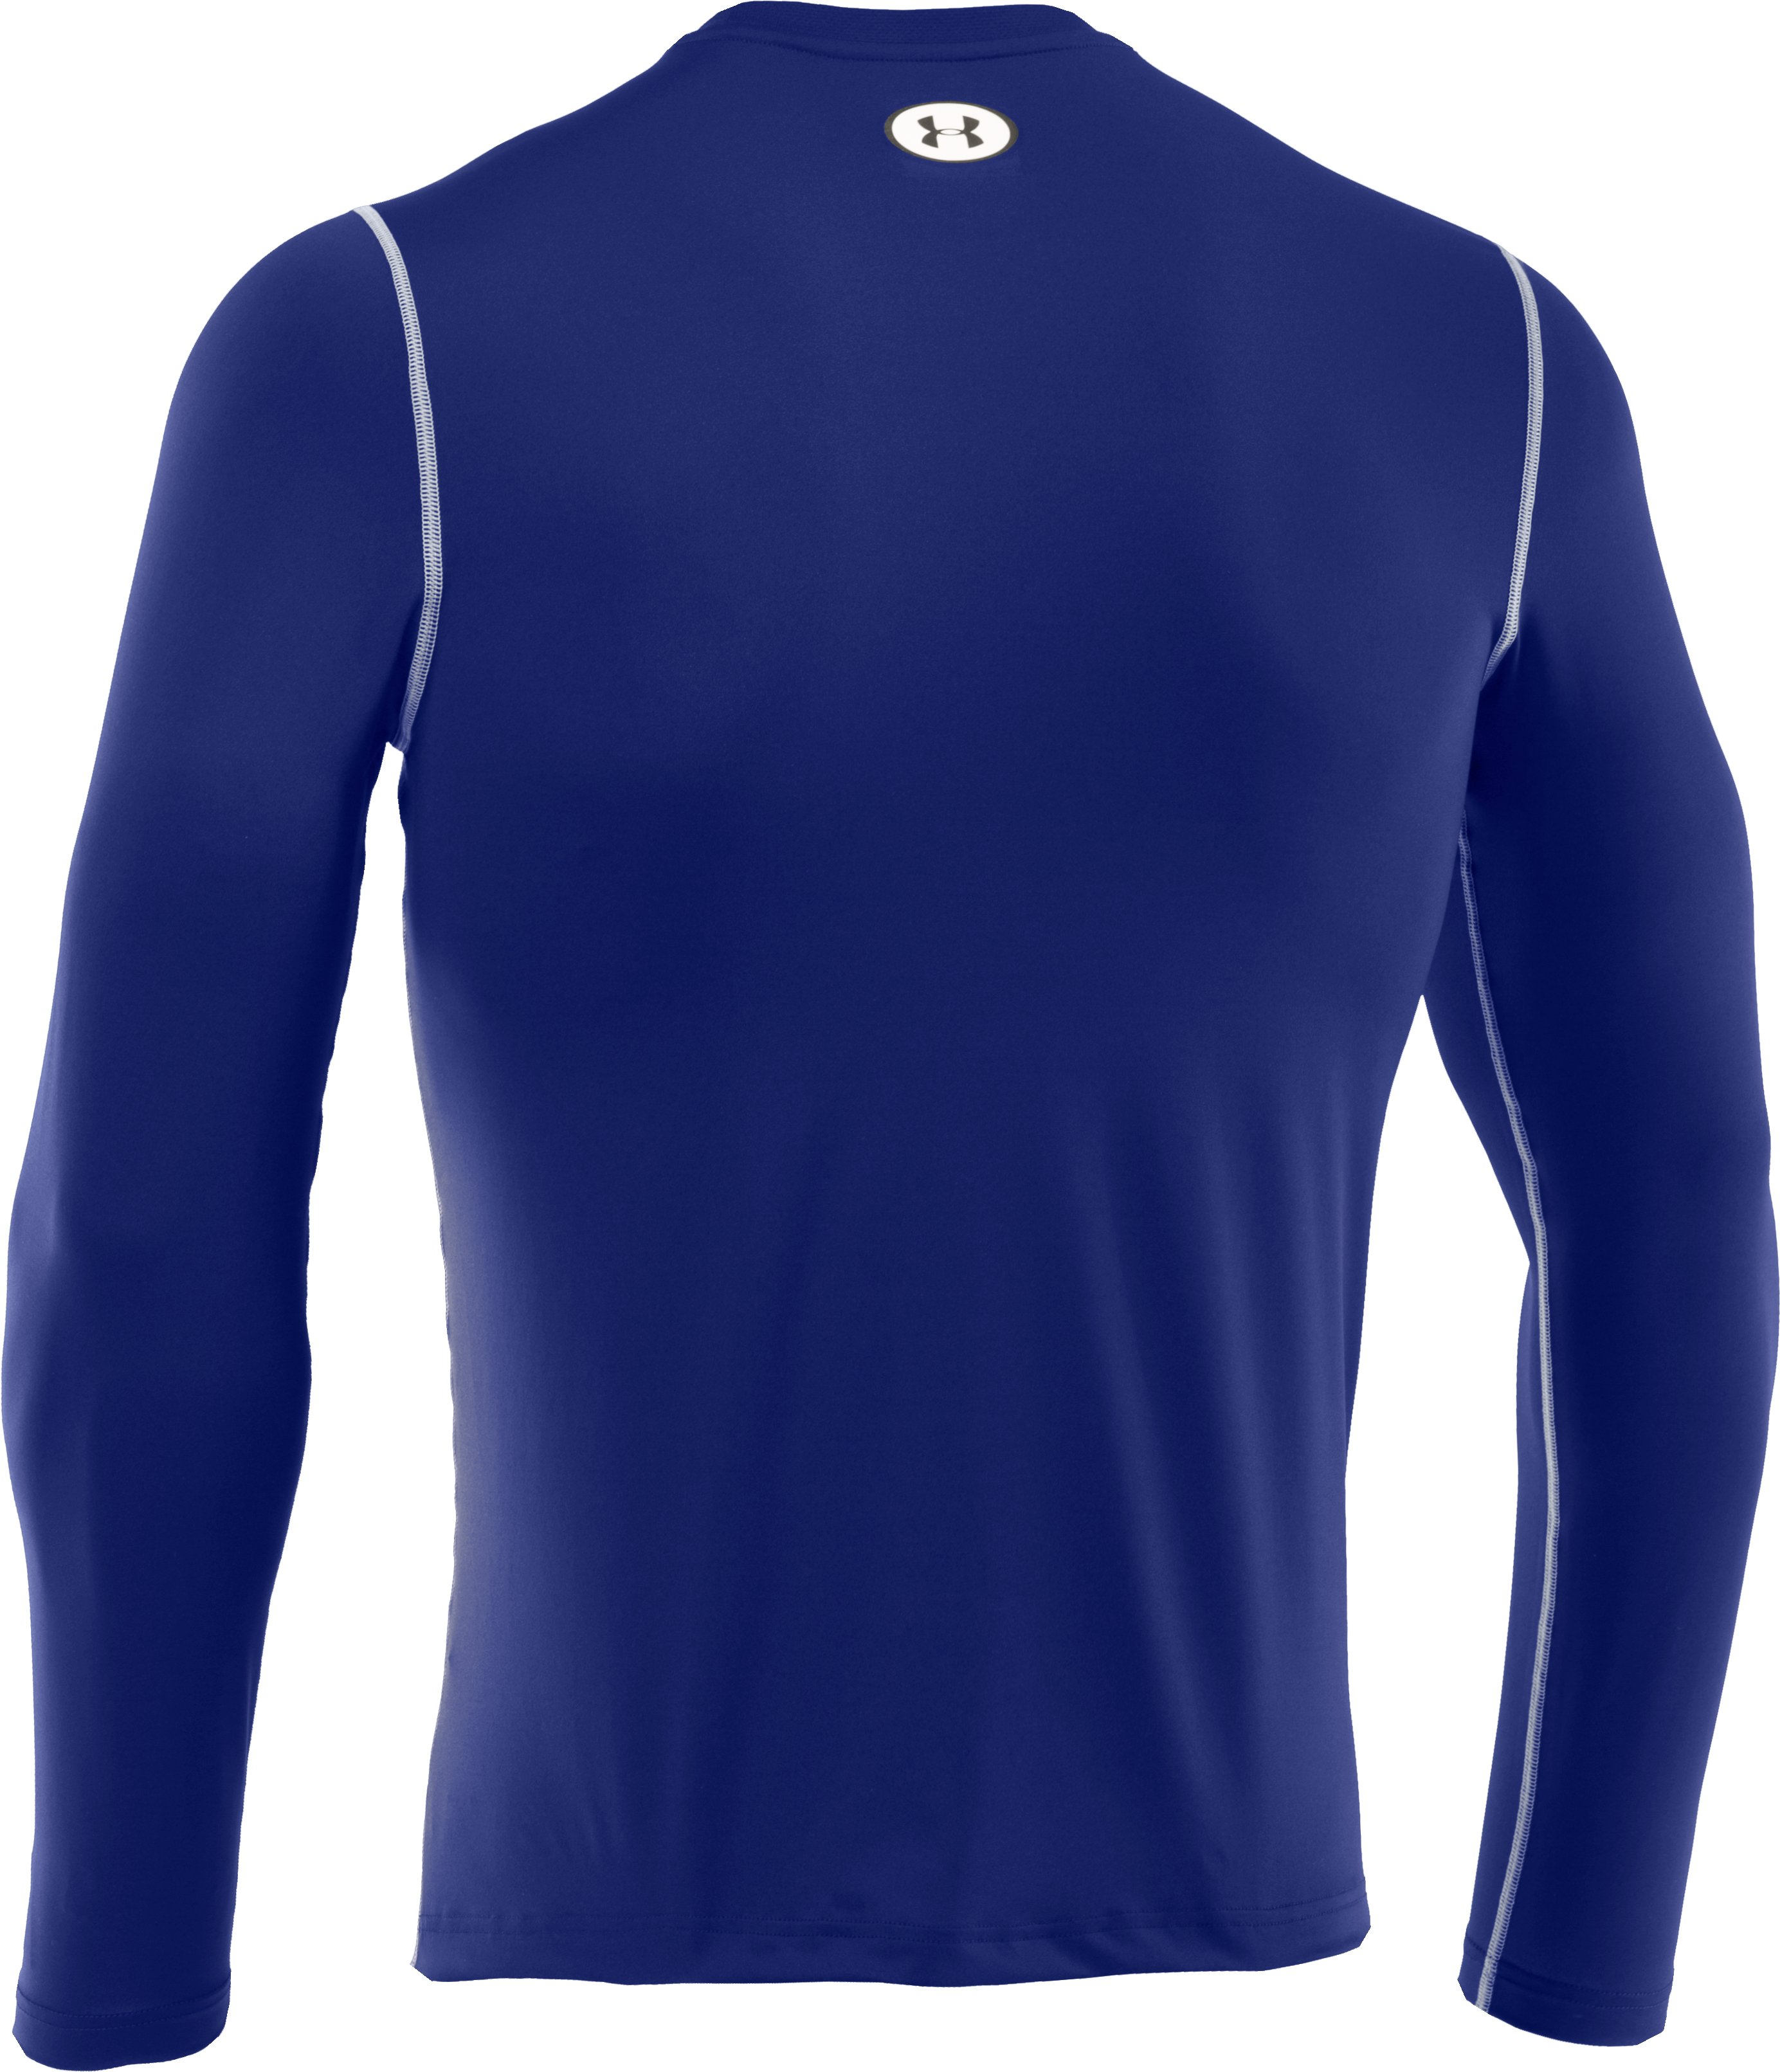 Men's HeatGear® Sonic Fitted Long Sleeve, Royal